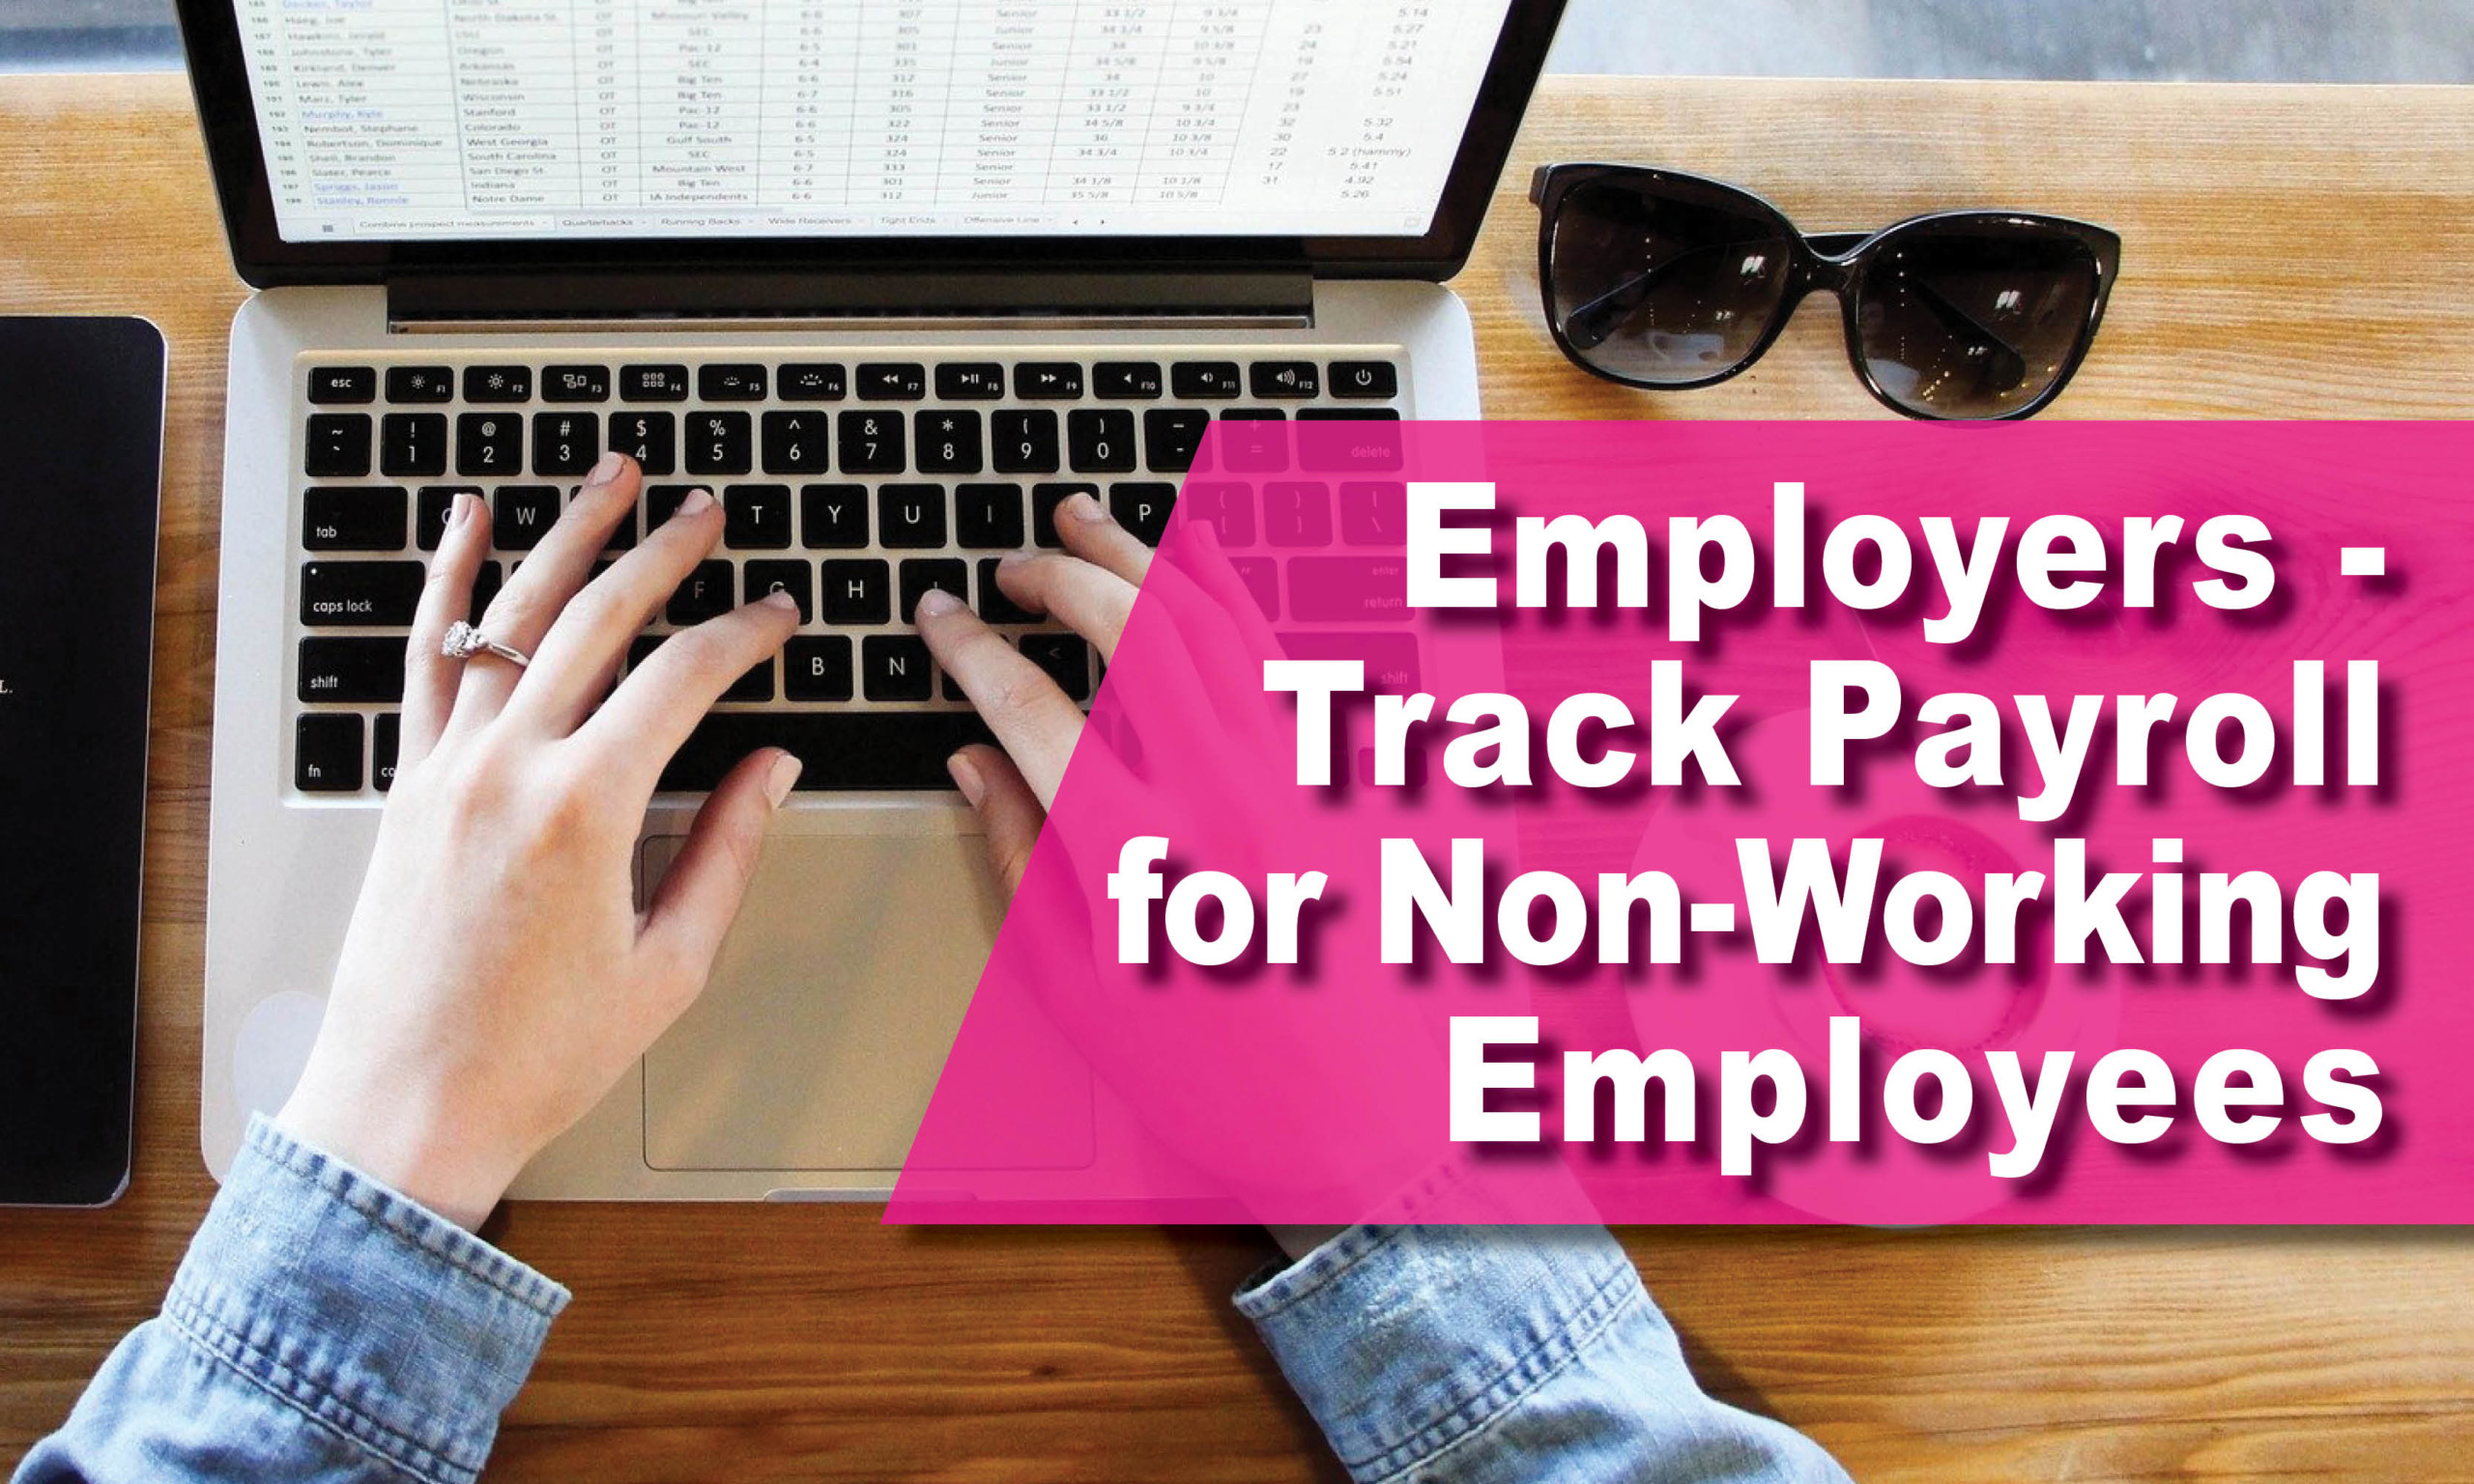 Employers – Track Payroll for Non-Working Employees